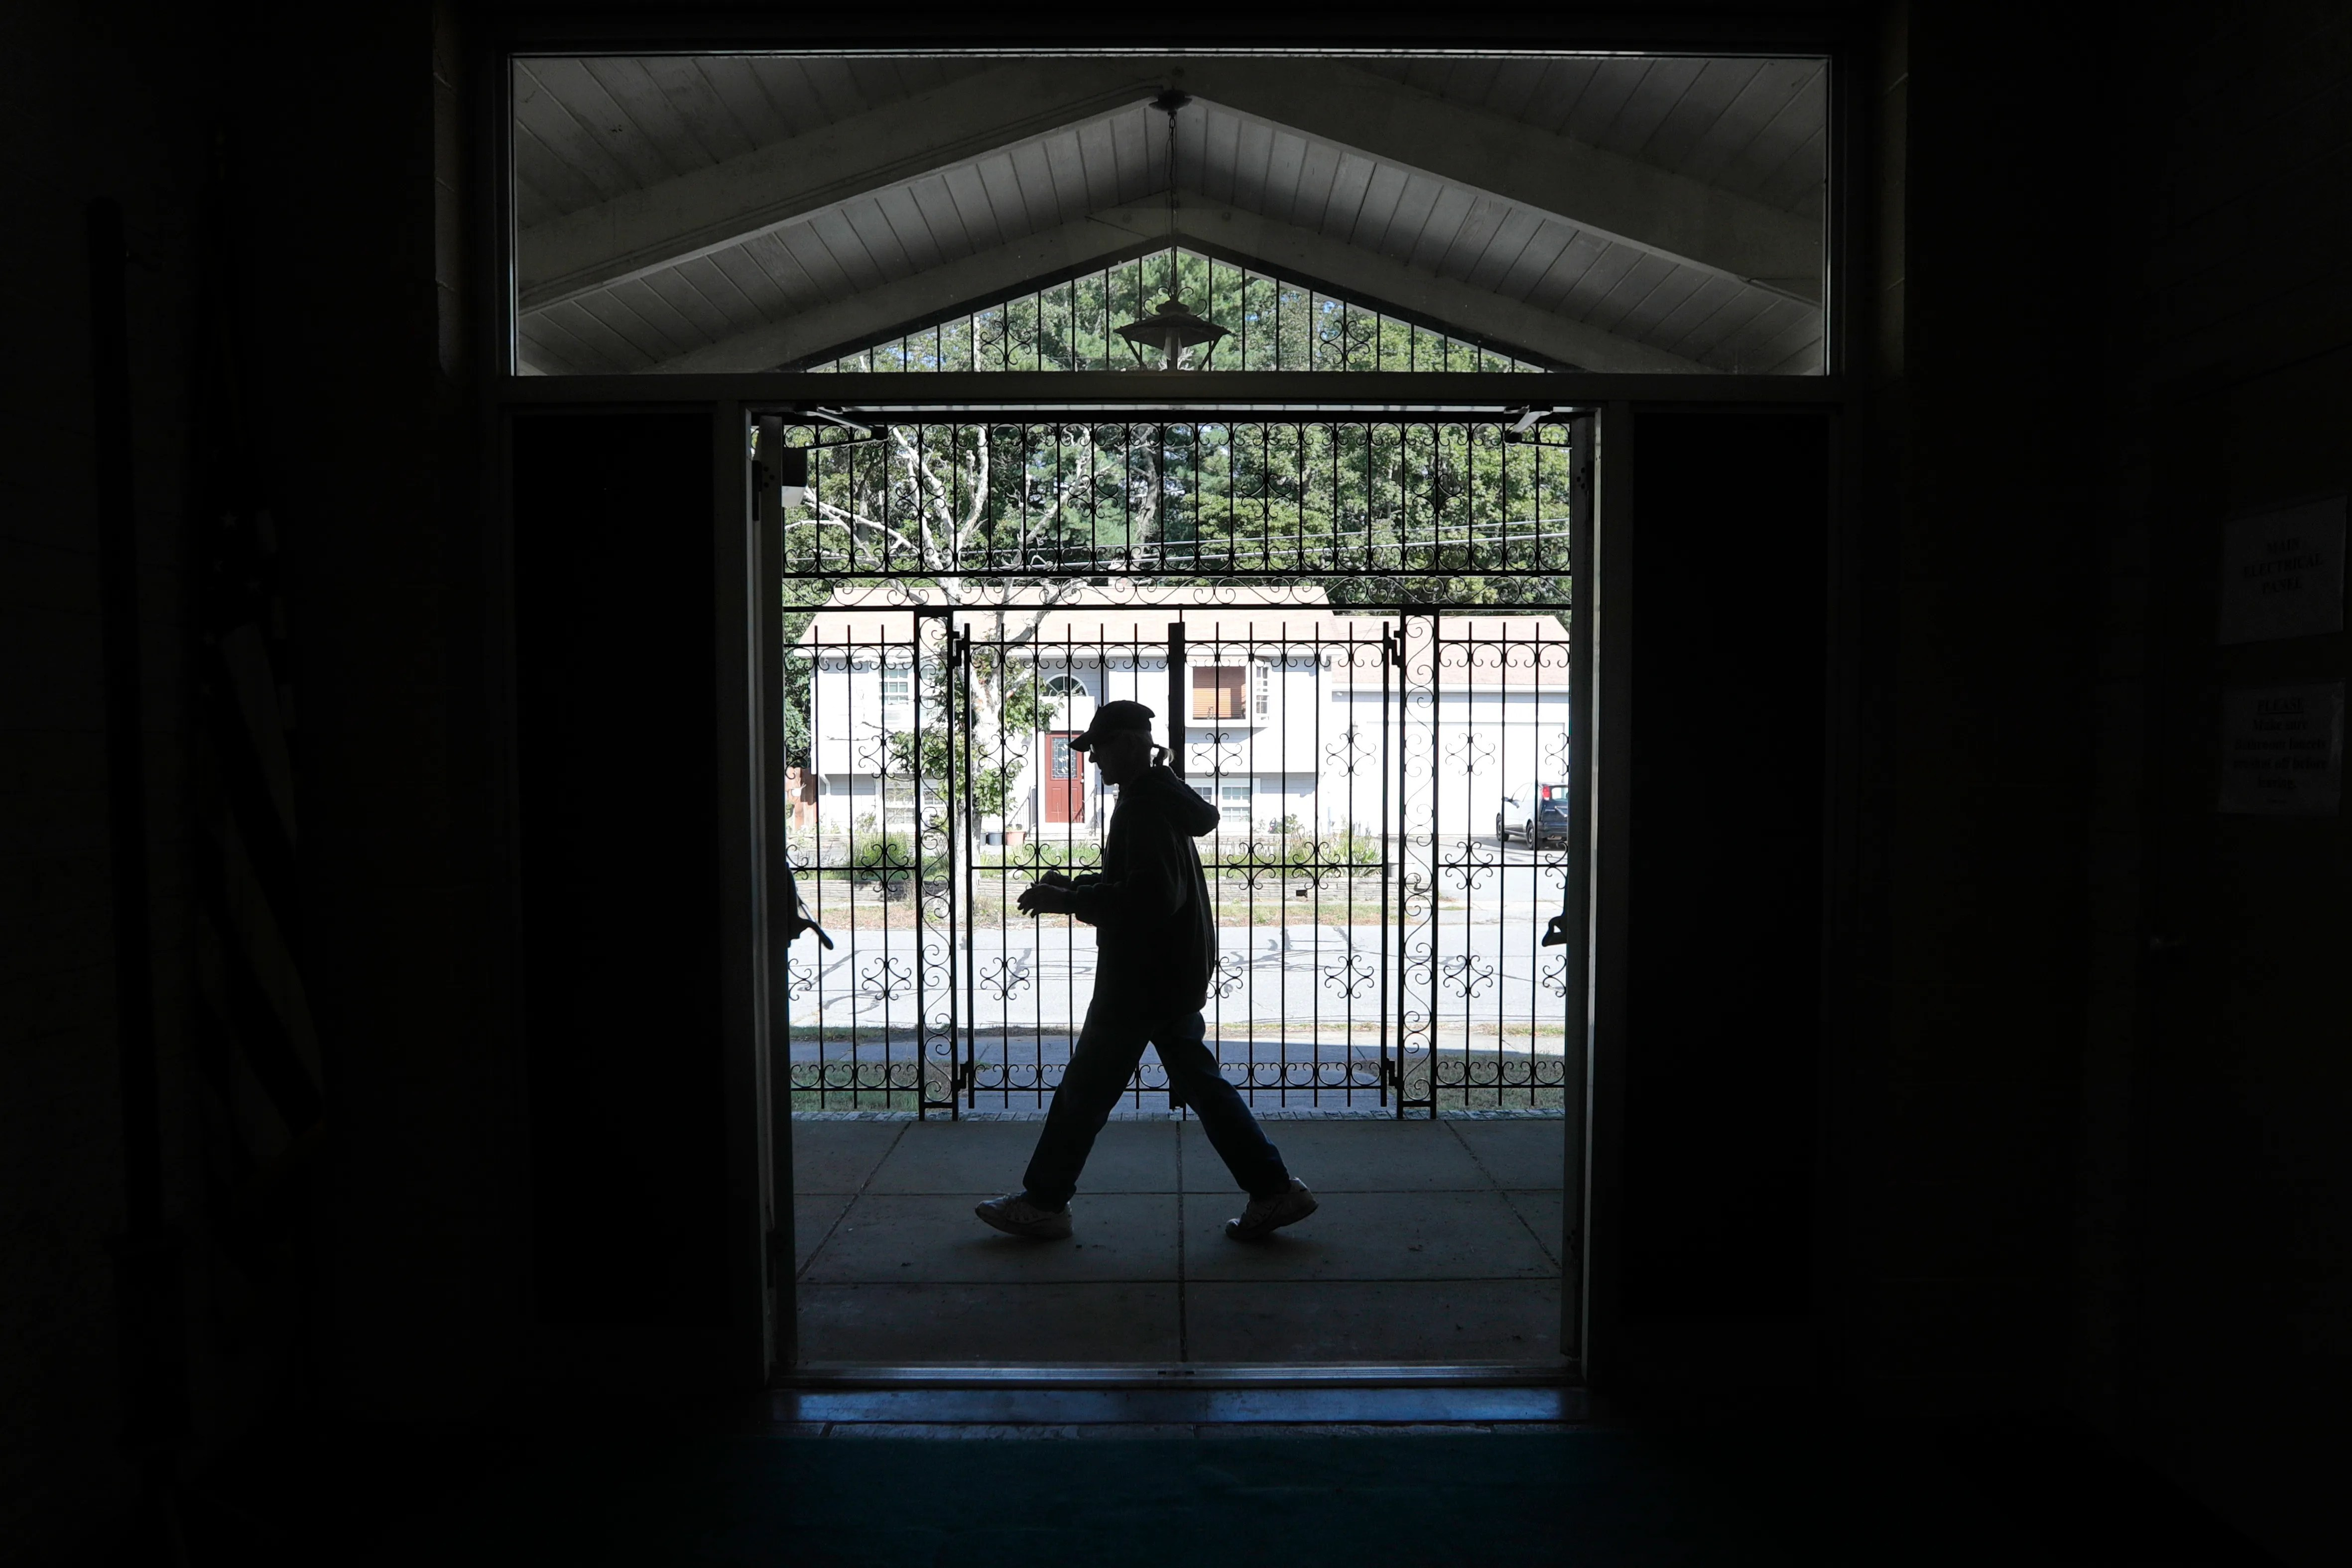 Richard Wisniewski walks past the closed gate at the Parish Center of Our Lady of Fatima Church on Acushnet Avenue in New Bedford, one of three churches closing this weekend.